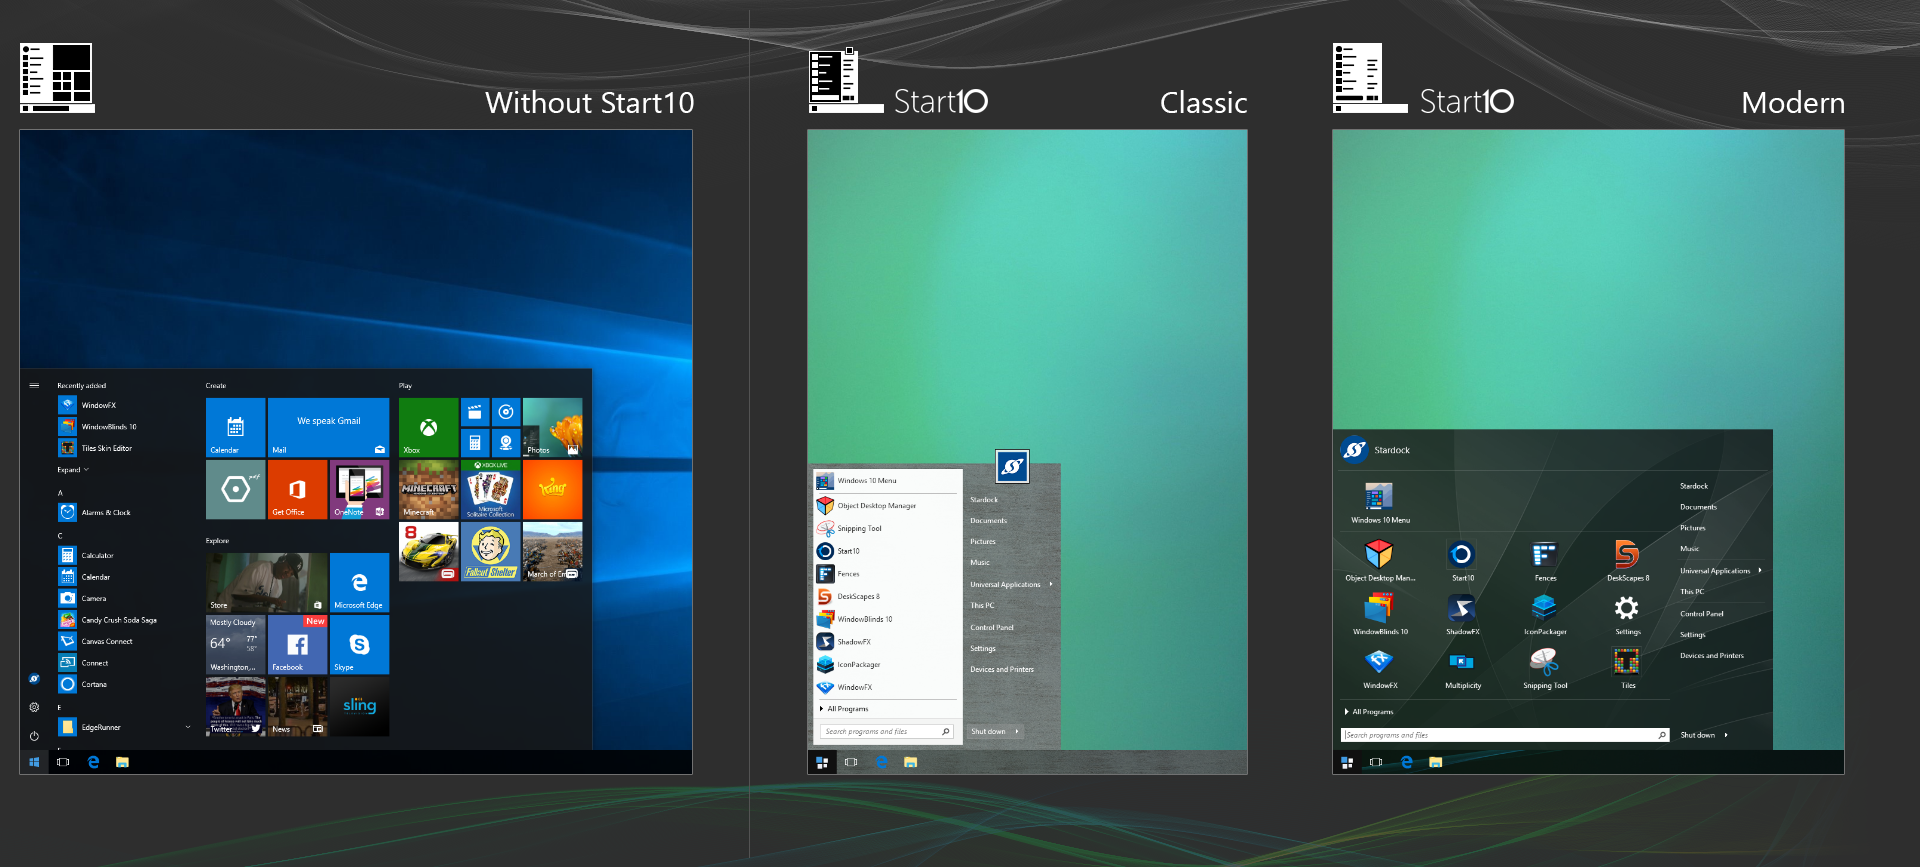 Windows media center alternative windows 10